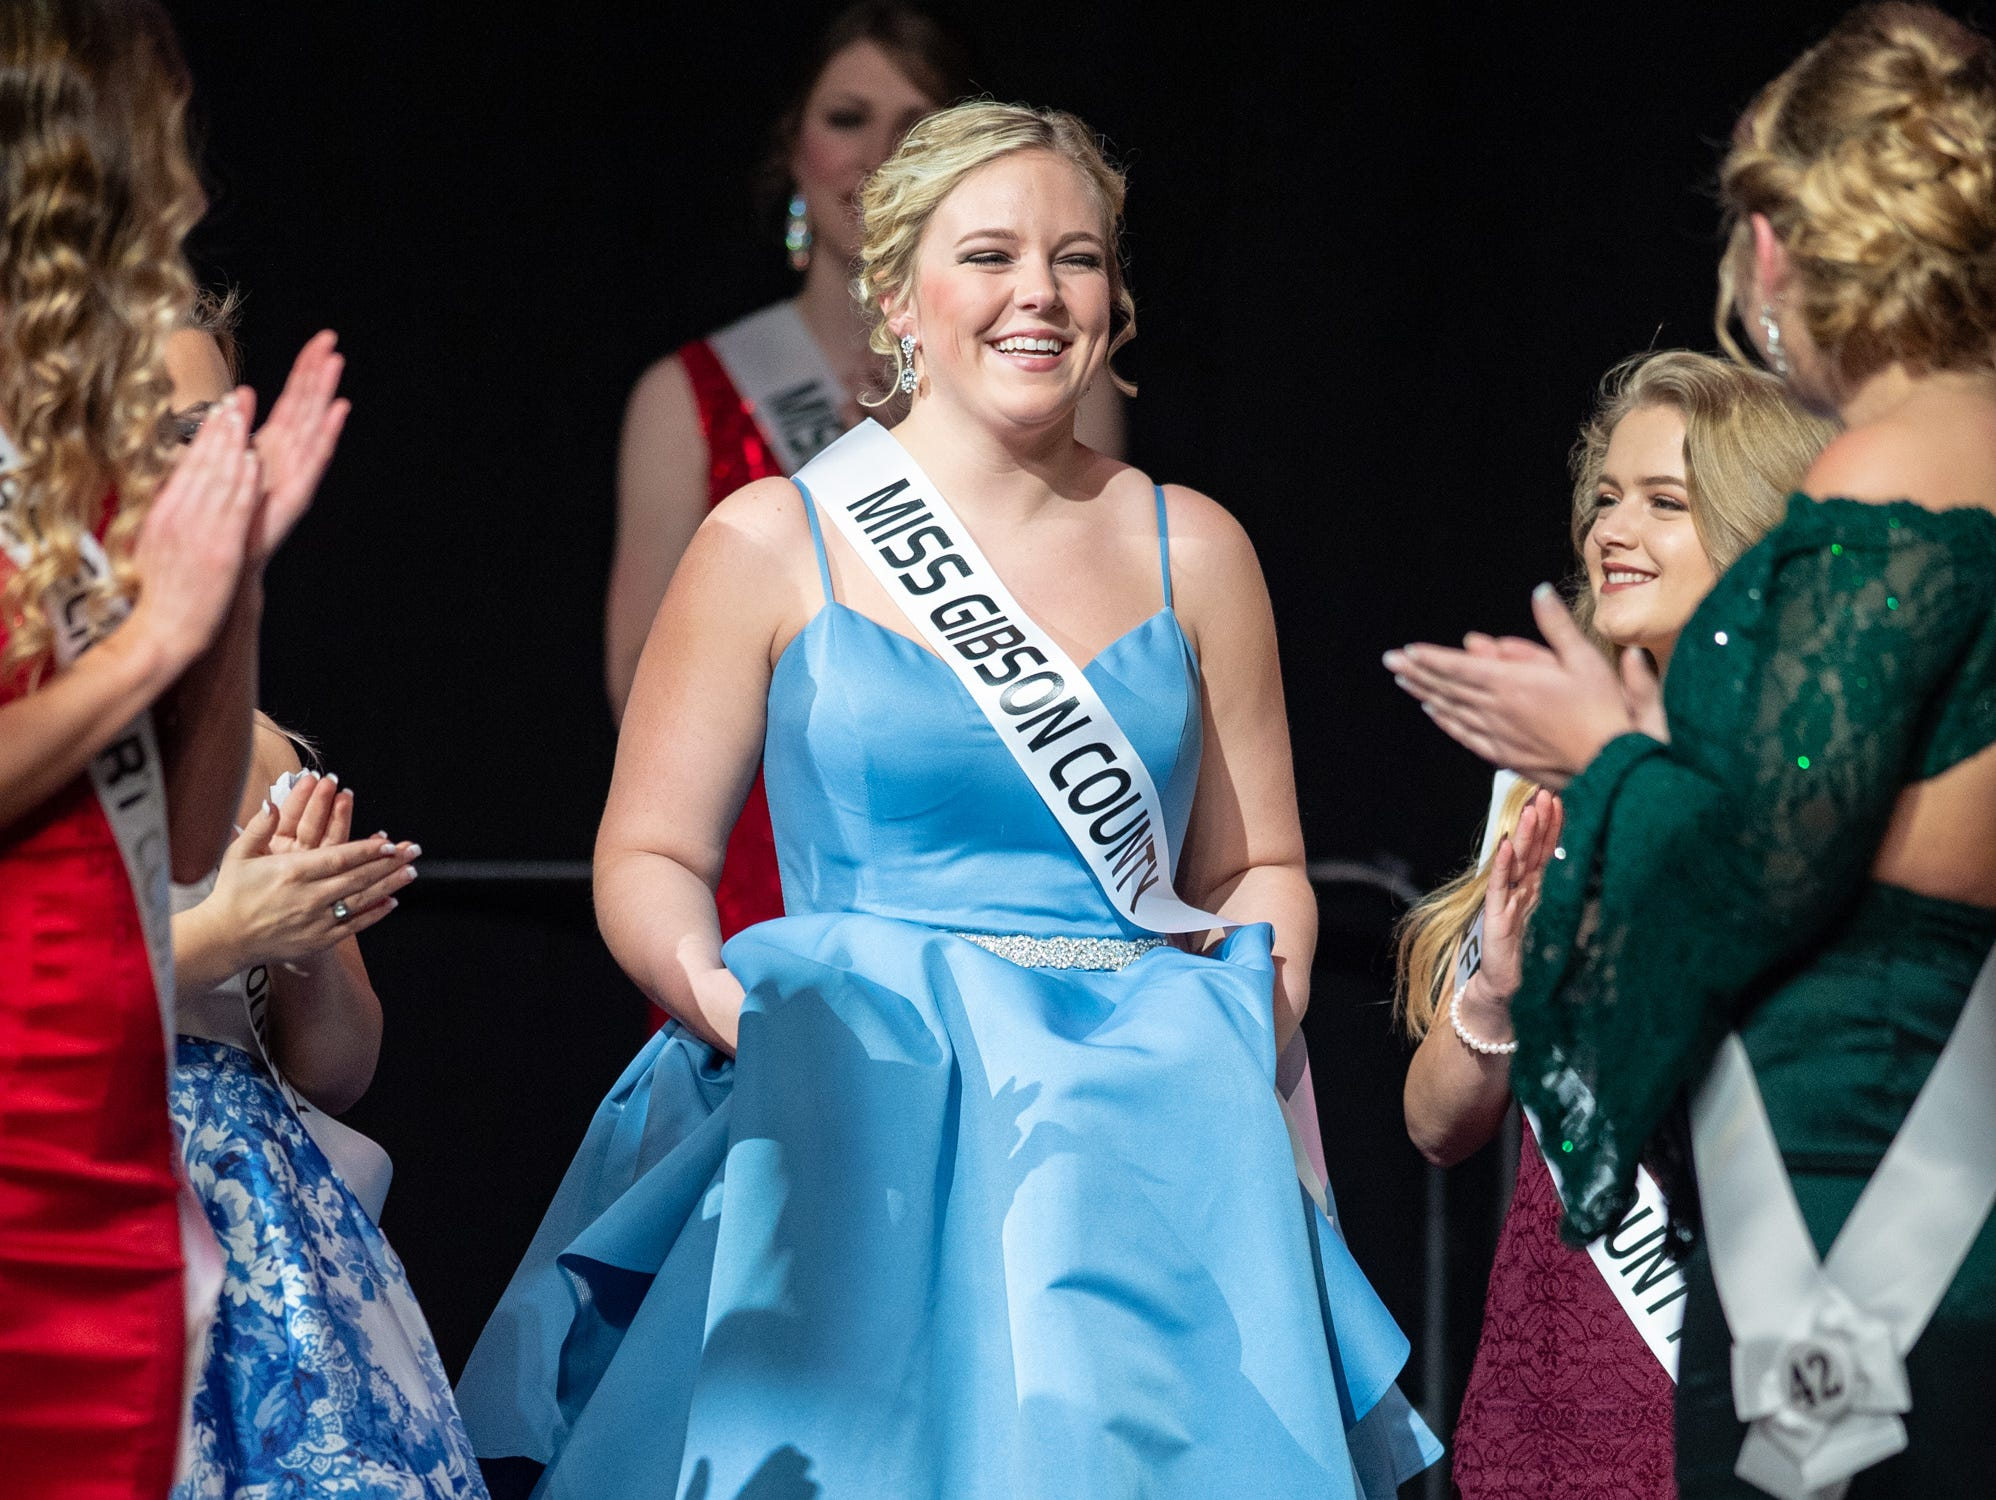 Miss Gibson County, Emily Scott, was named Miss Congeniality during the 61st Indiana State Fair Queen Pageant at the Indiana State Fairgrounds in Indianapolis on Sunday, Jan. 6, 2019.